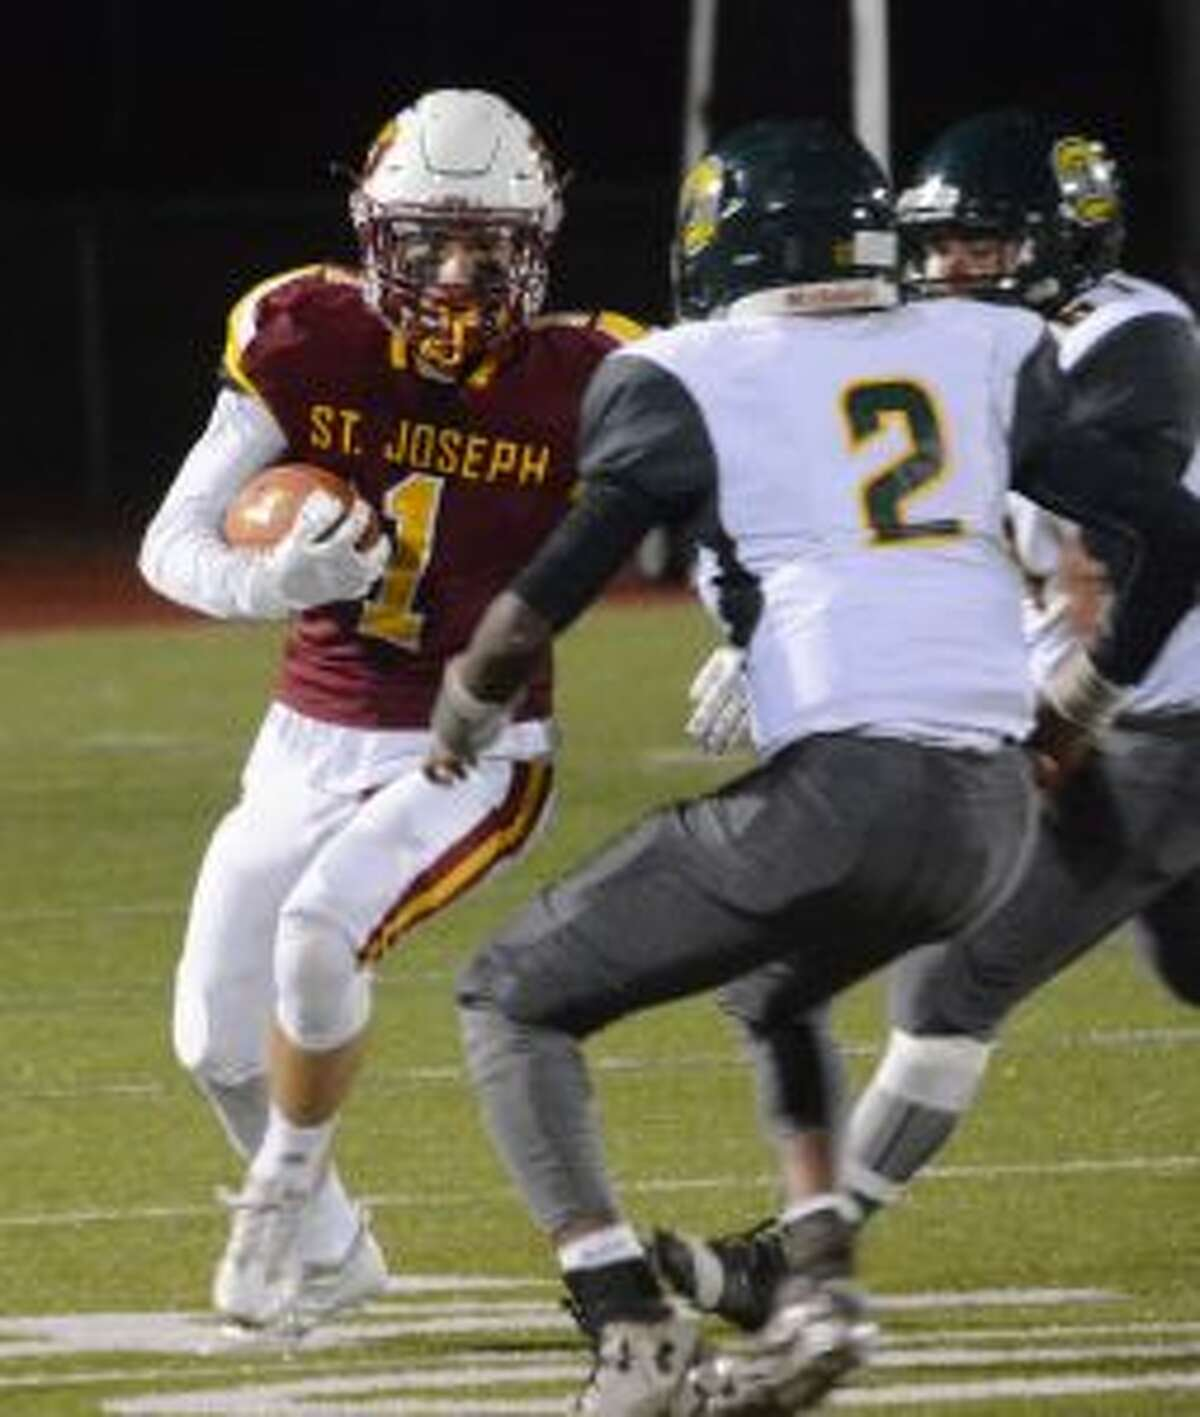 Ace Luzietti returned an interception for a touchdown. - Andy Hutchison photo